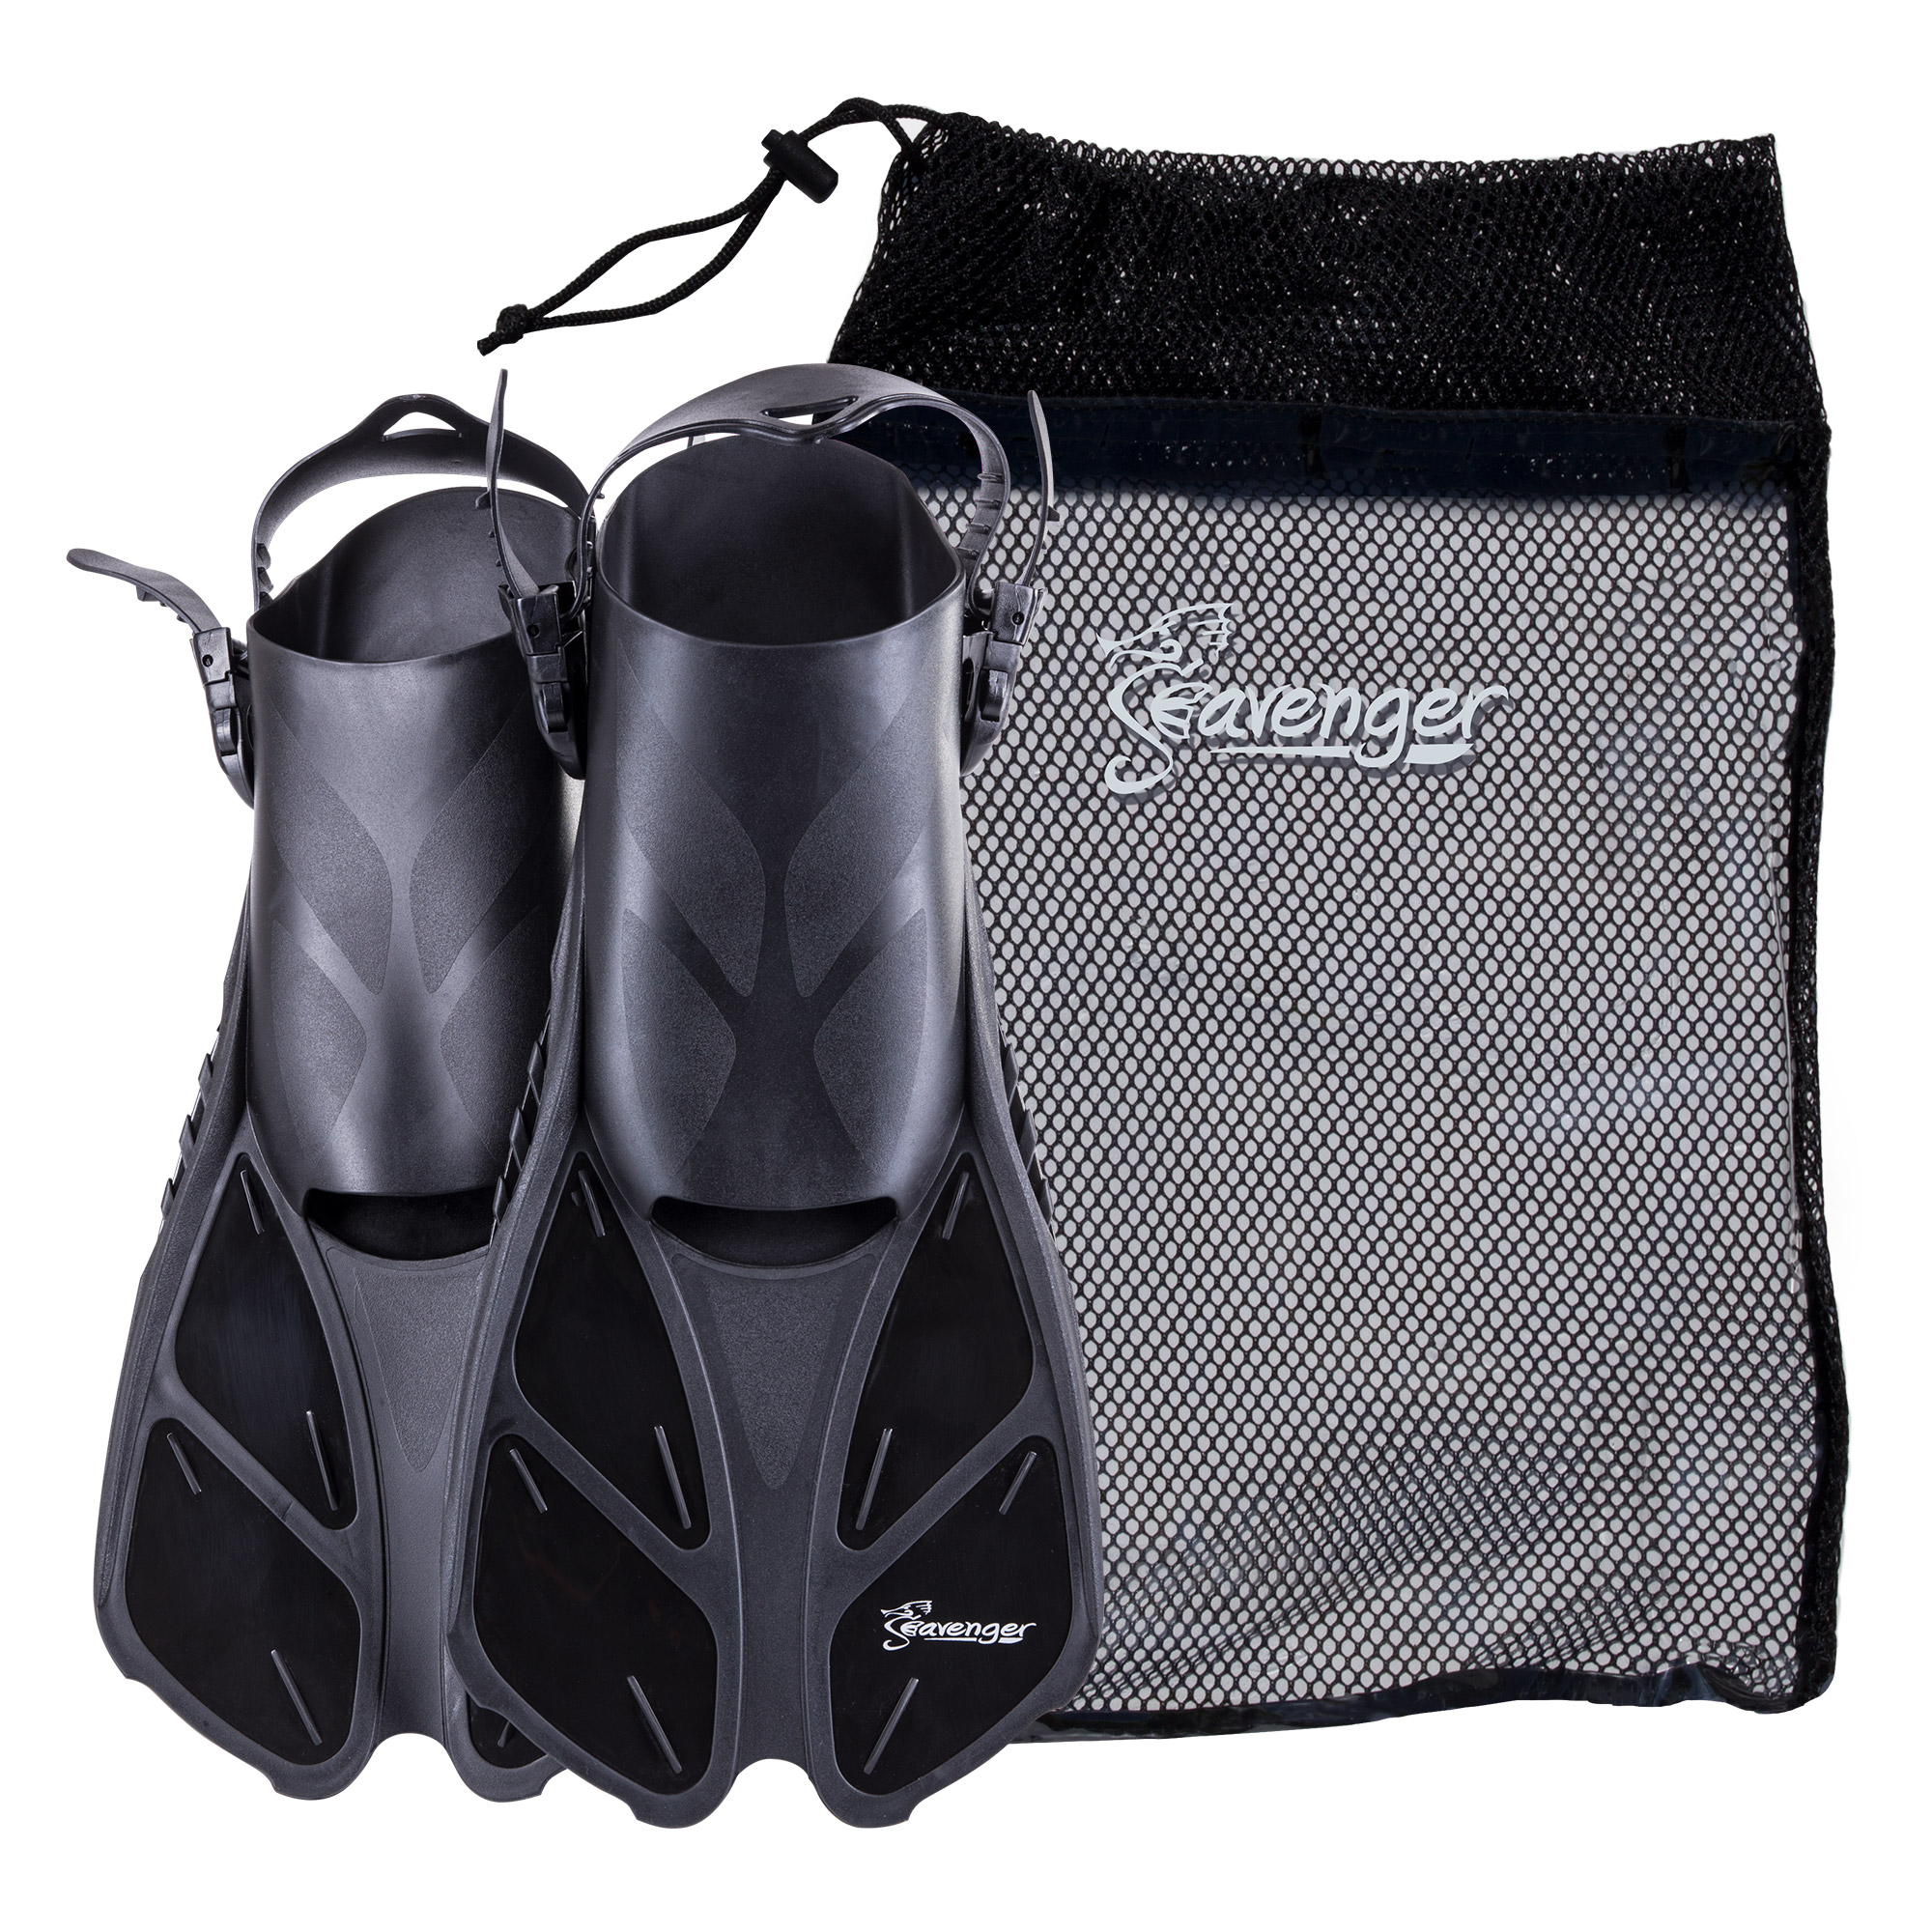 Seavenger Swim Fins   Flippers with Gear Bag for Snorkeling & Diving, Perfect for Travel Black L XL by